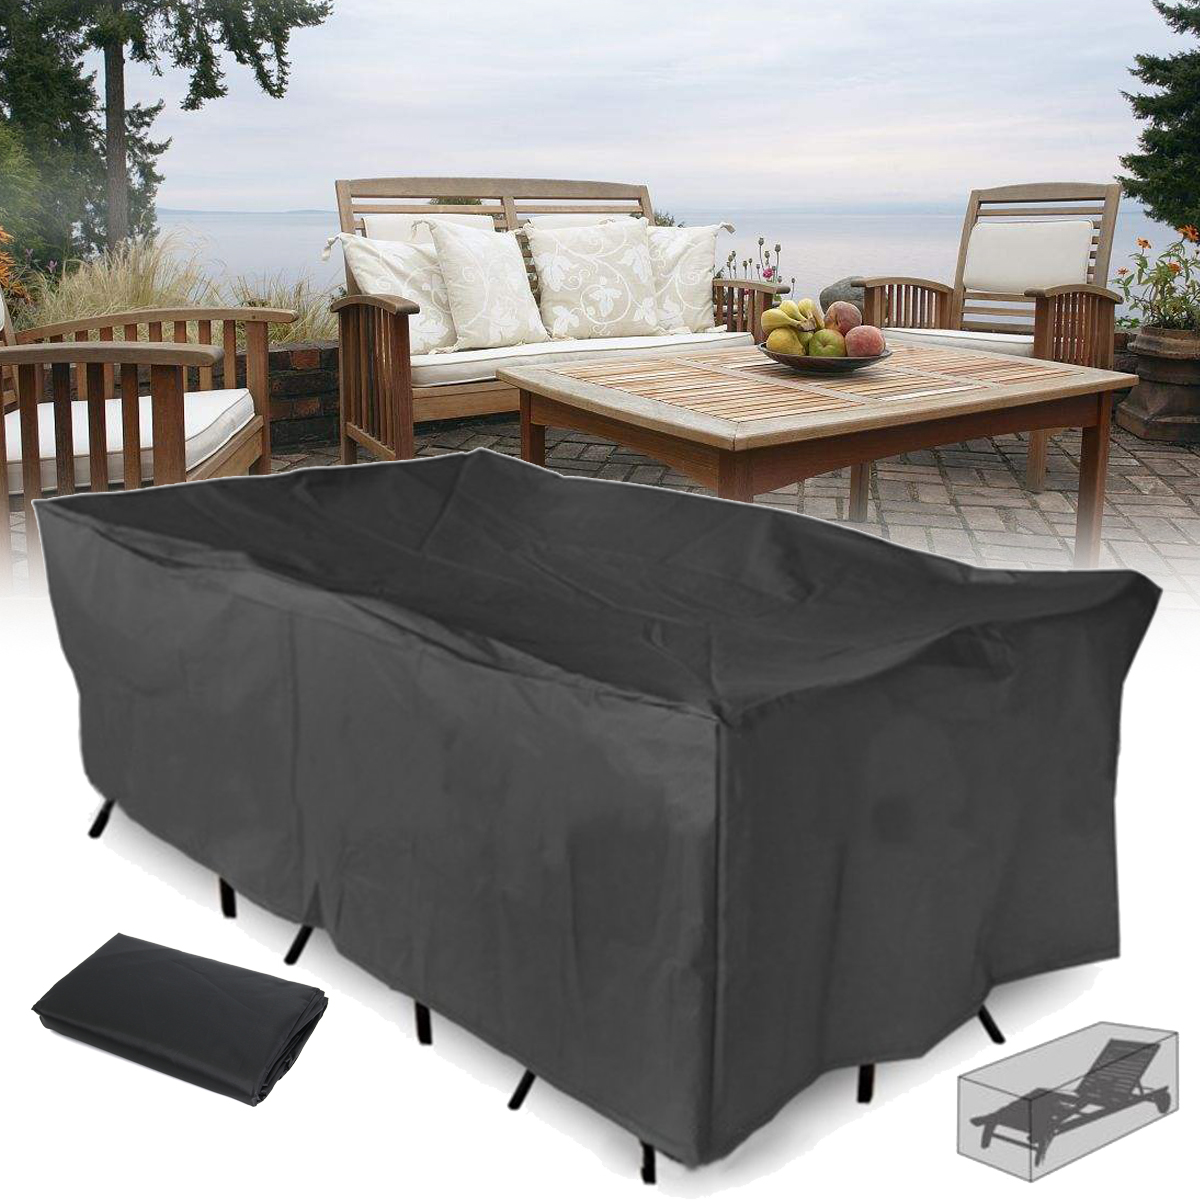 outdoor patio furniture cover extra large rectangular table chair furniture set covers waterproof windproof tear resistant uv protection fits 4 10